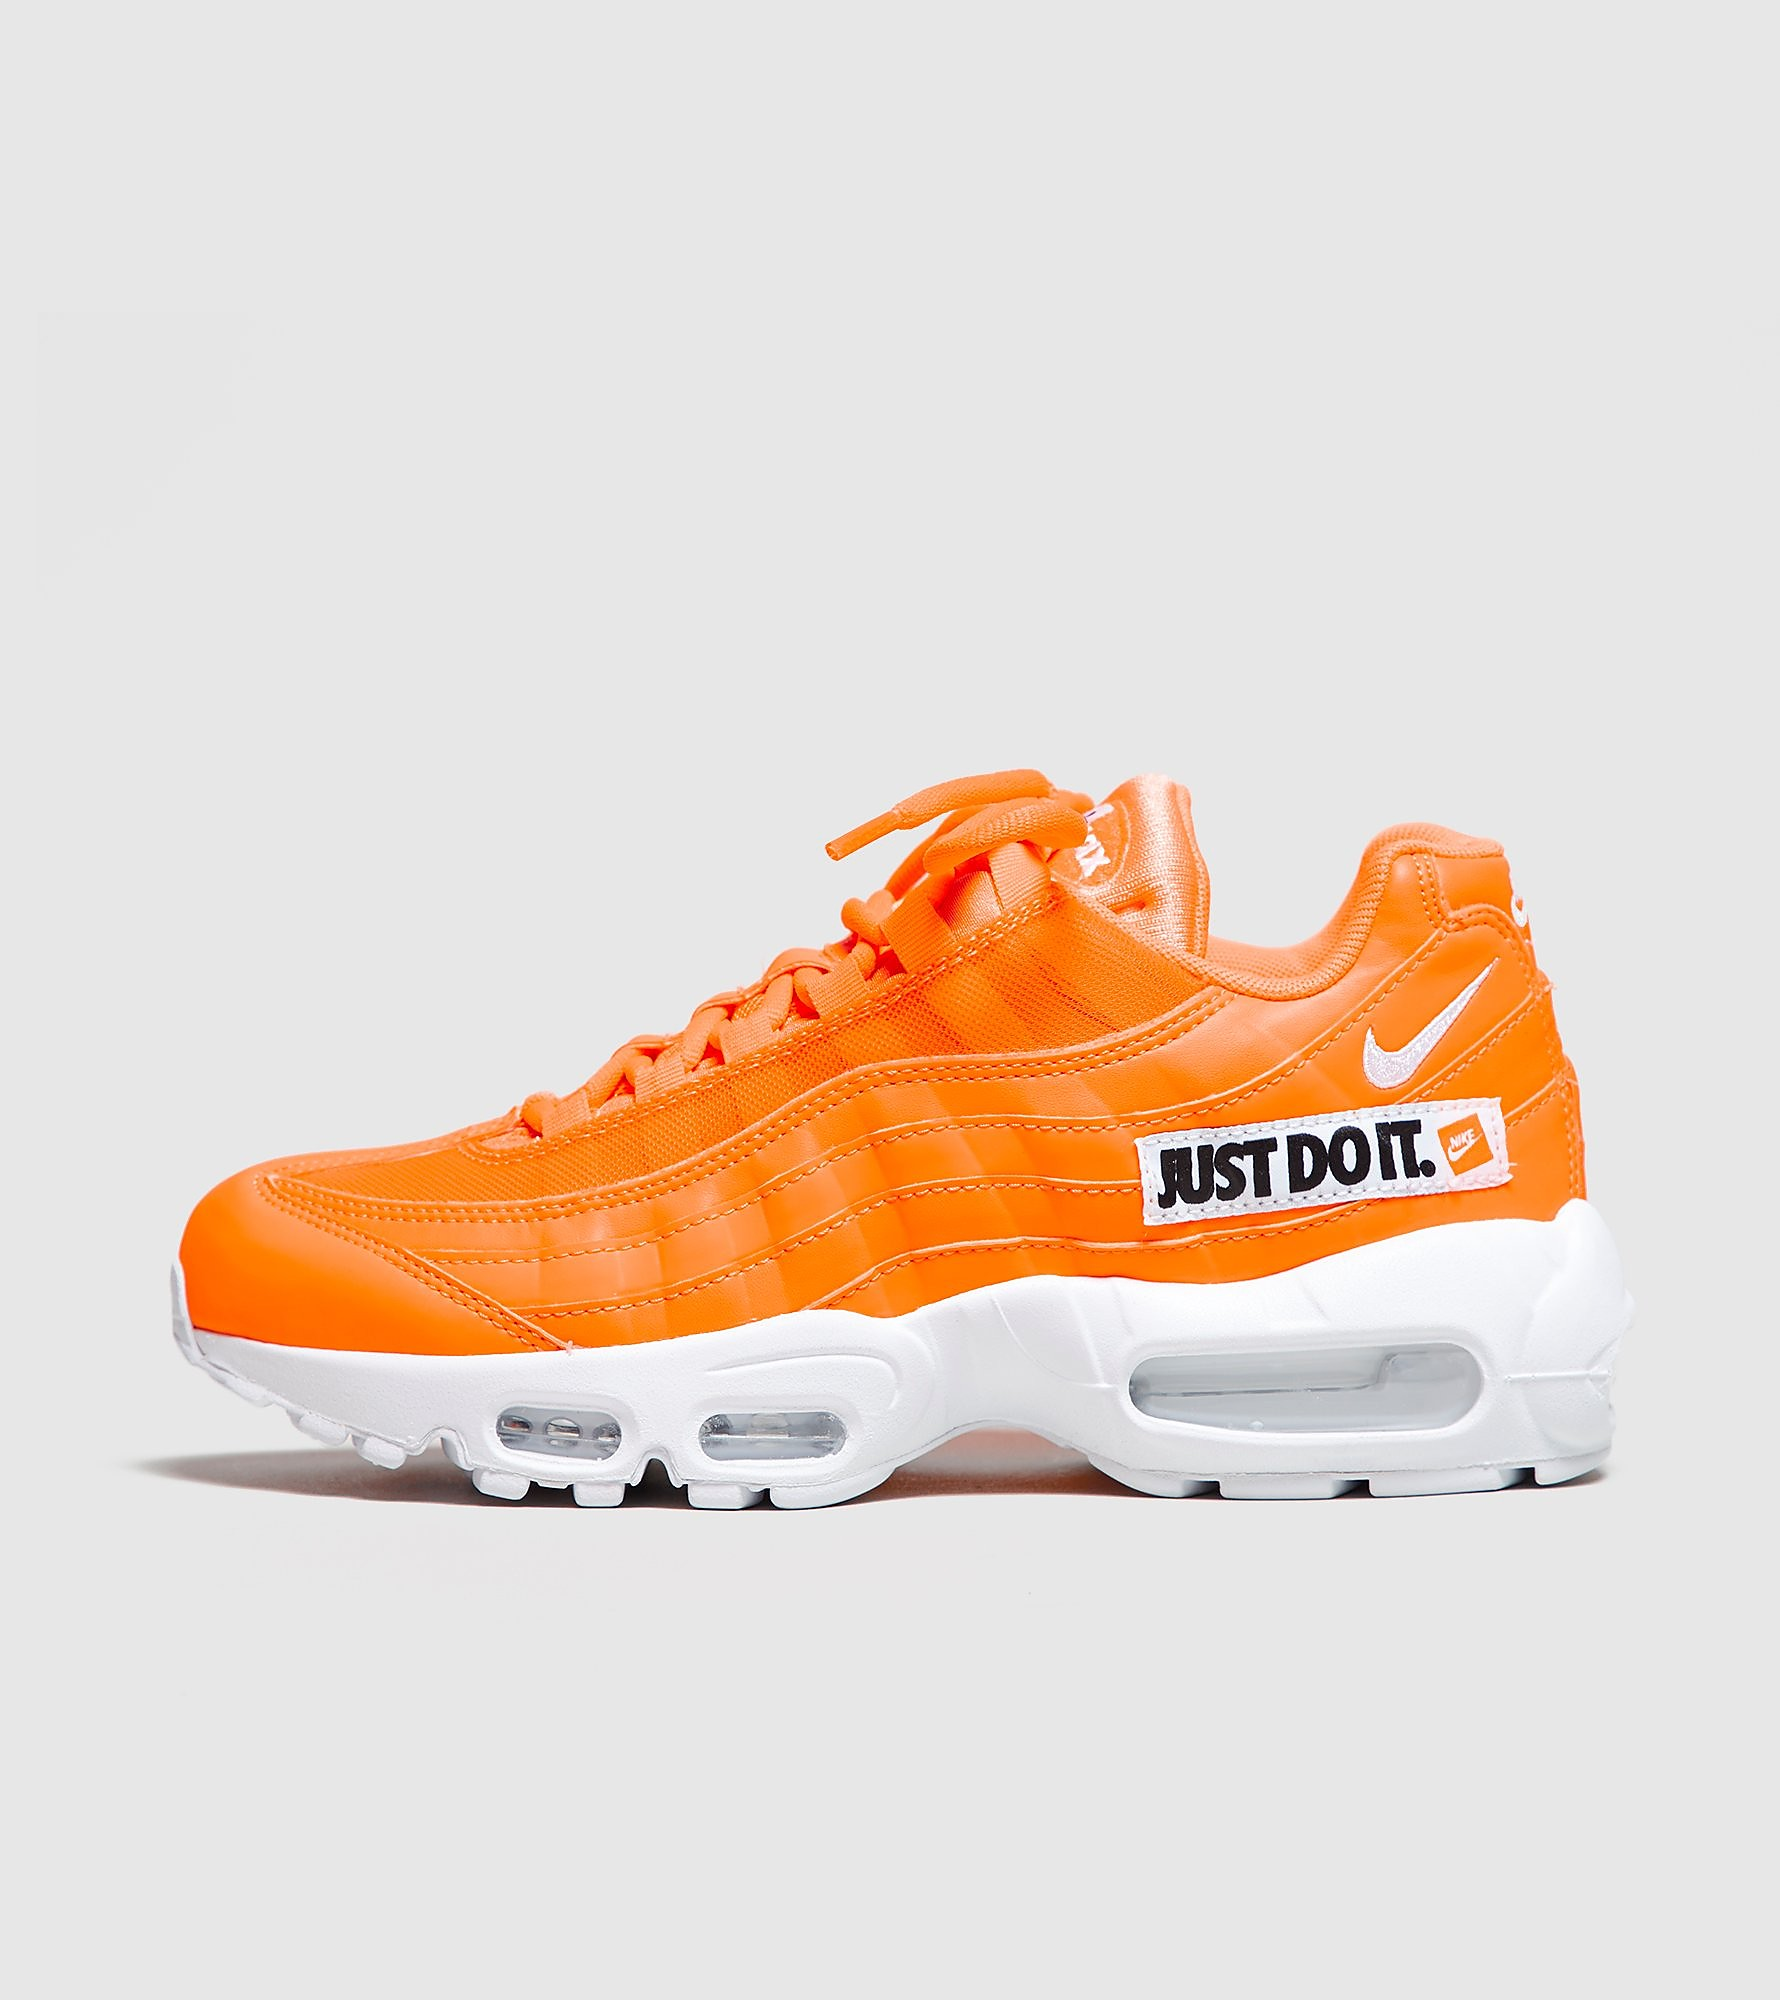 Nike Air Max 95 'Just Do It' Women's